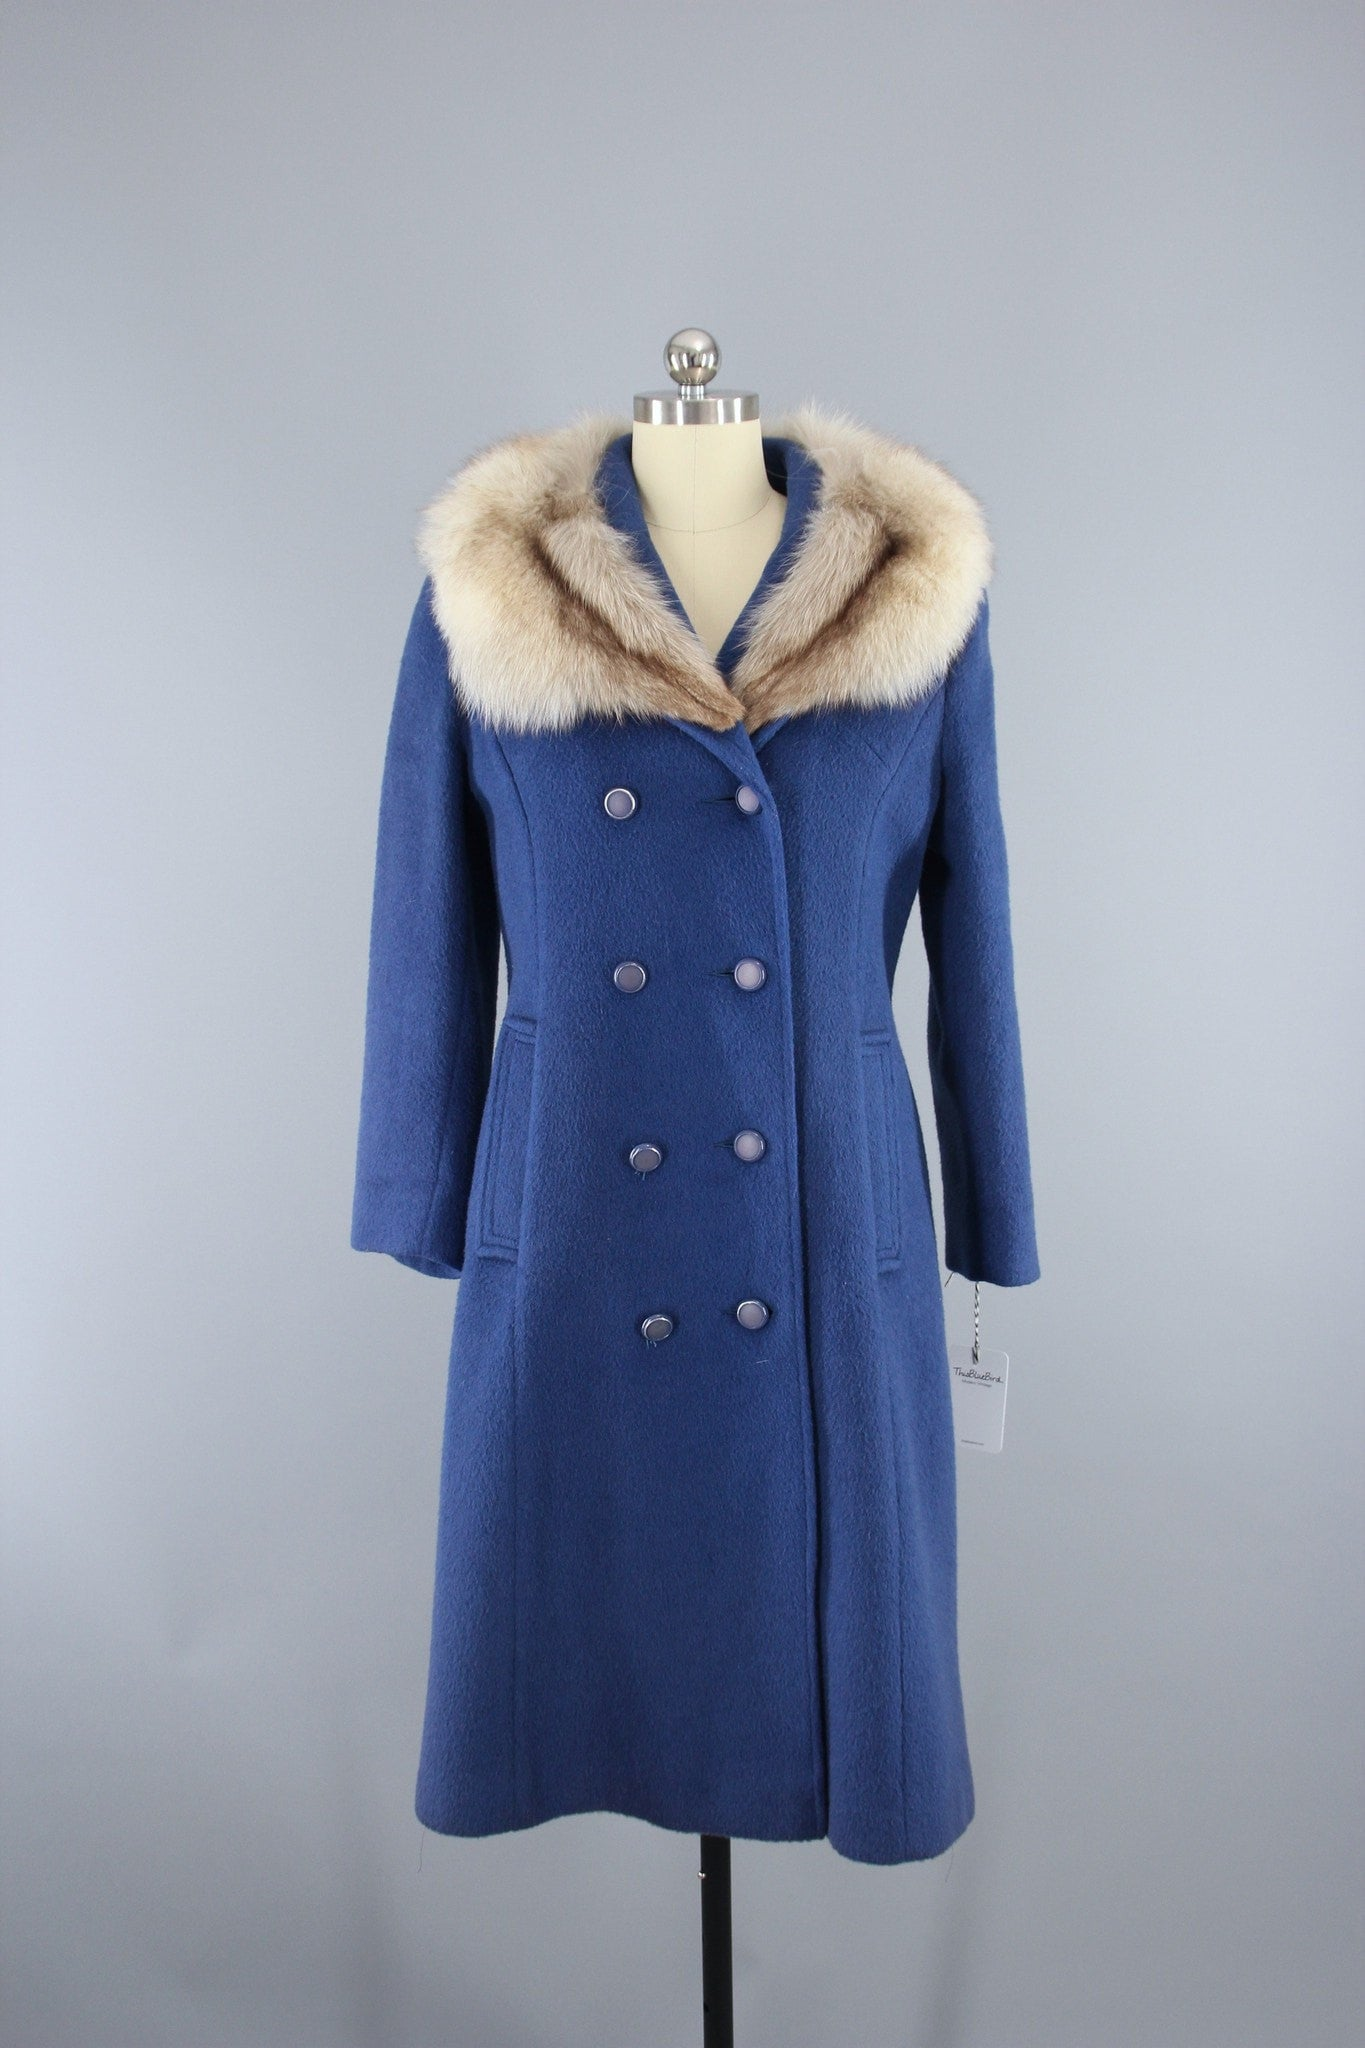 1960s Vintage Windsor Blue Wool Coat with Fox Fur Collar Outerwear ThisBlueBird